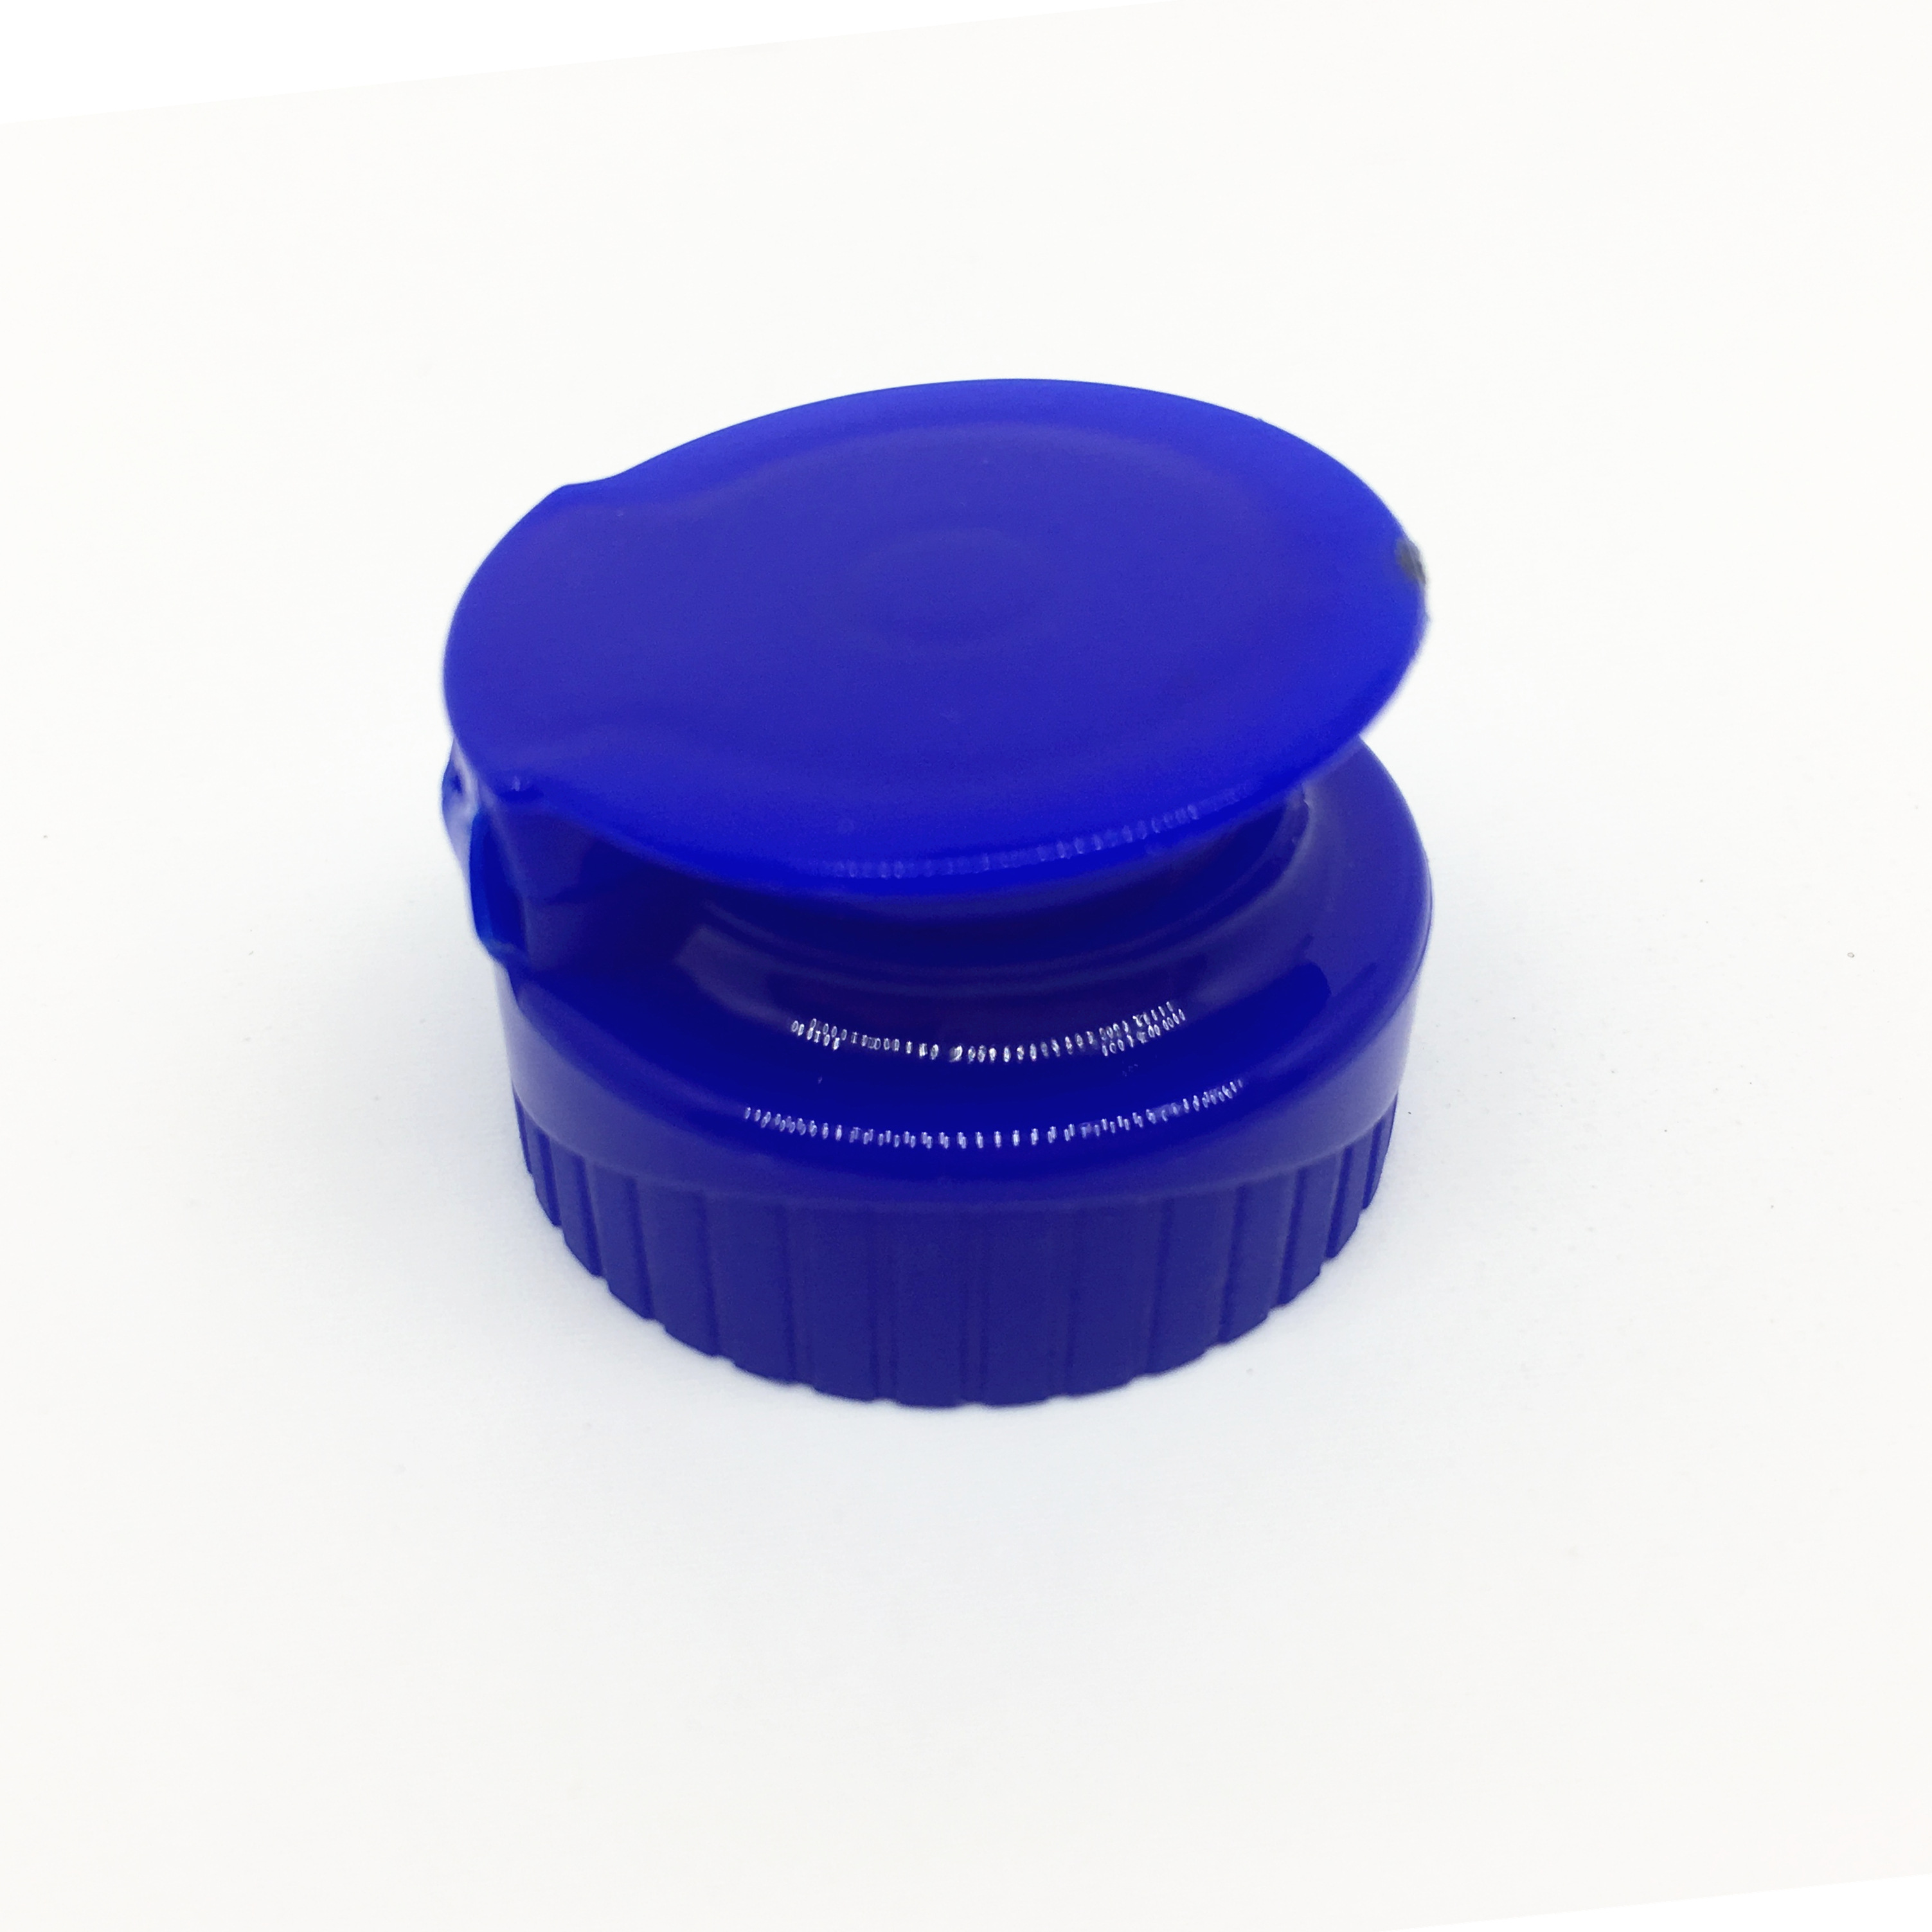 24/410 28/410 38/400 28/400 Plastic  screw cap for Detergent bottles dishwashing bottle